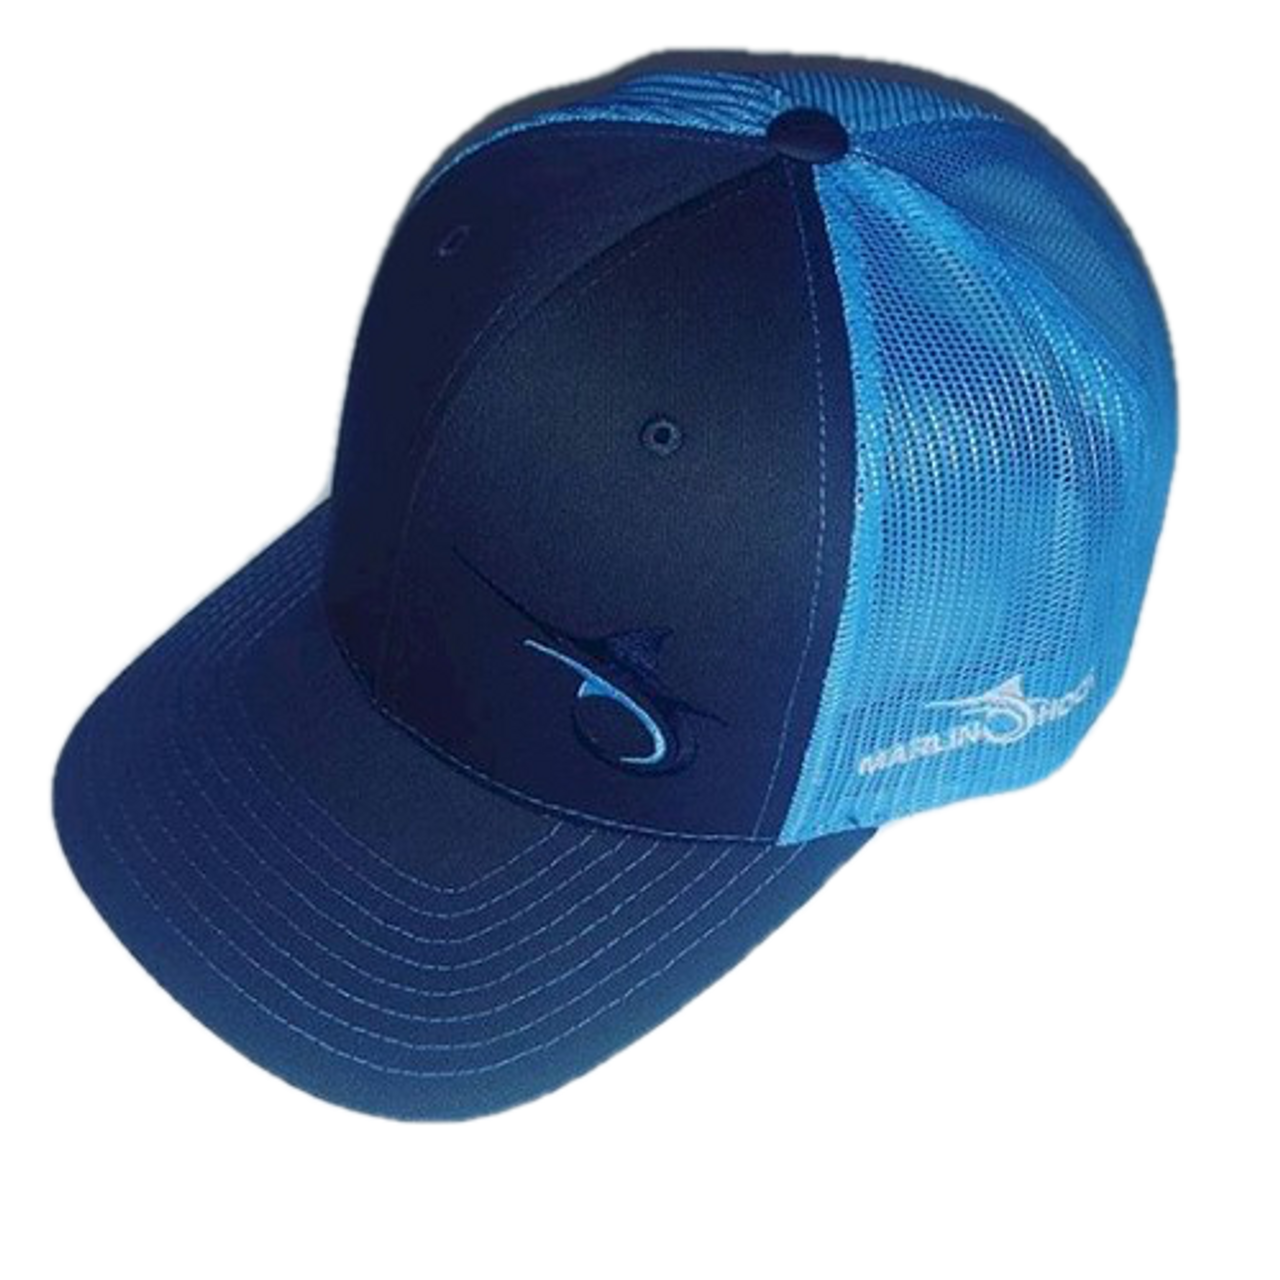 c7785065af45f Marlin Hook Trucker Hat - Columbia Blue Charcoal - Alltackle.com